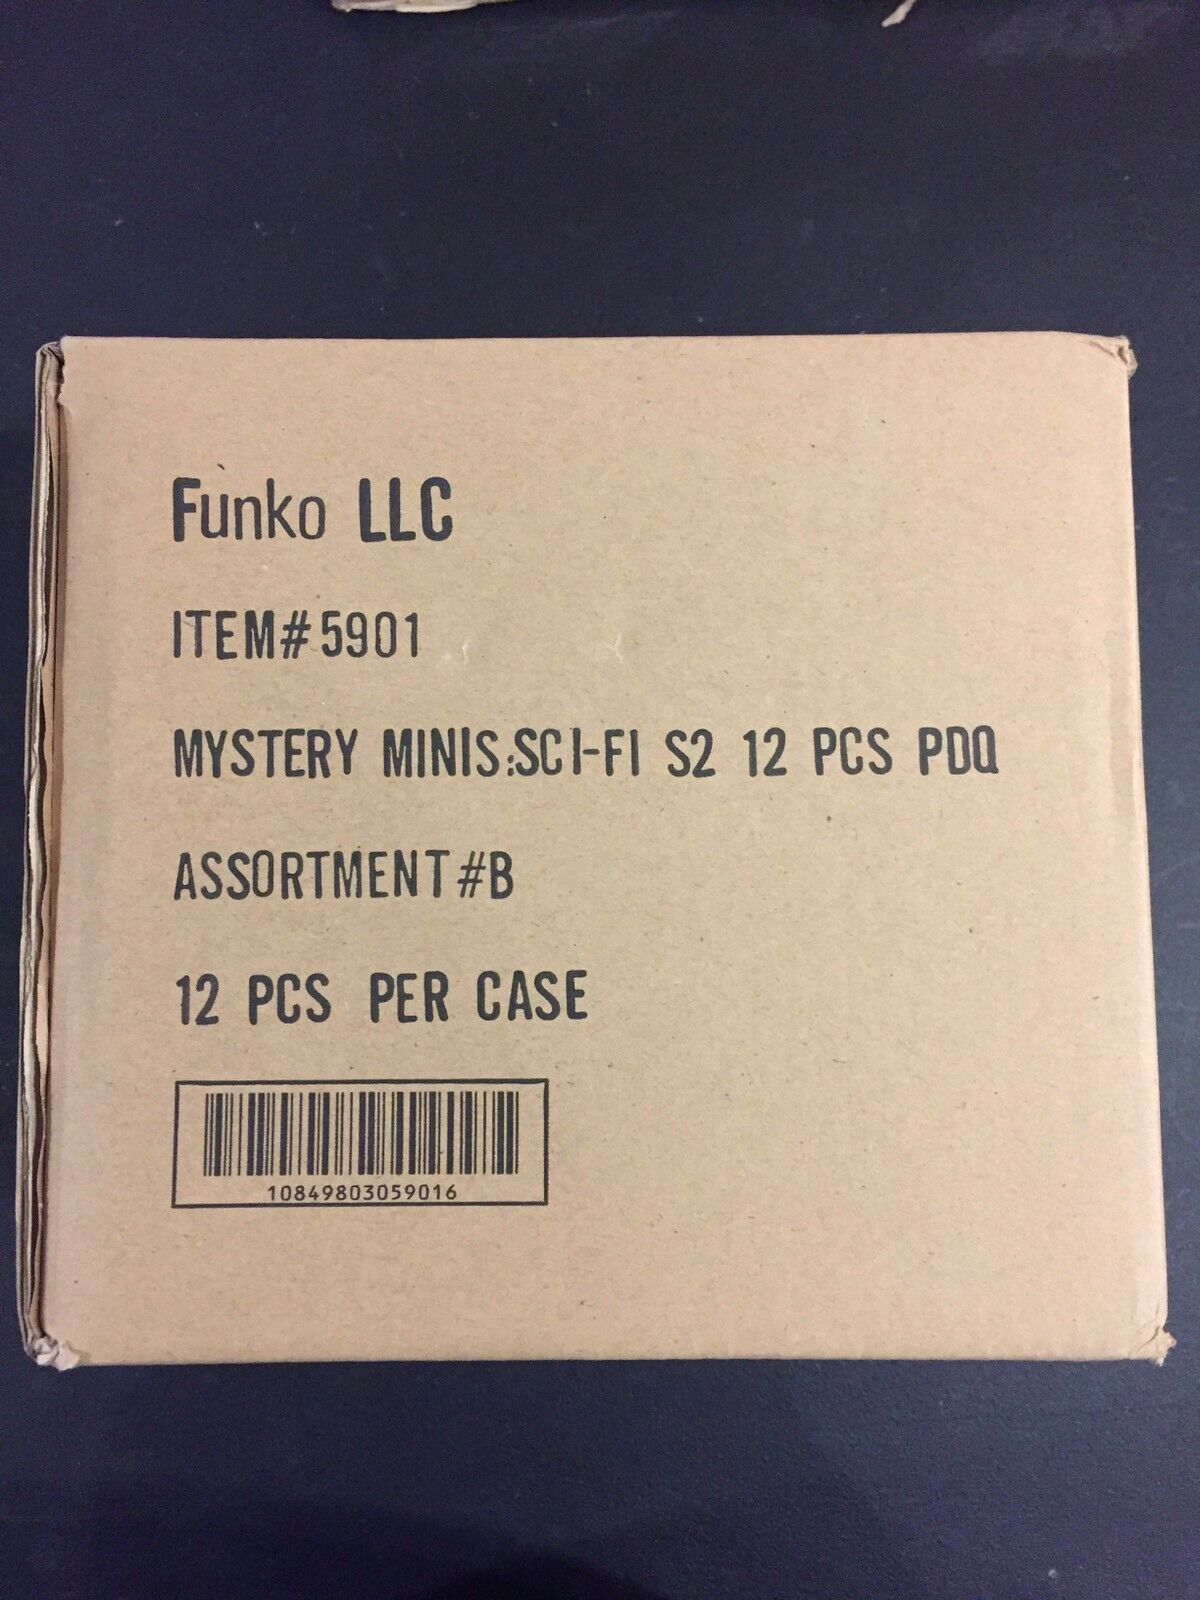 Funko Sci Fi Series 2 (Box B) Mystery Minis blind box Full Unopened Case of 12